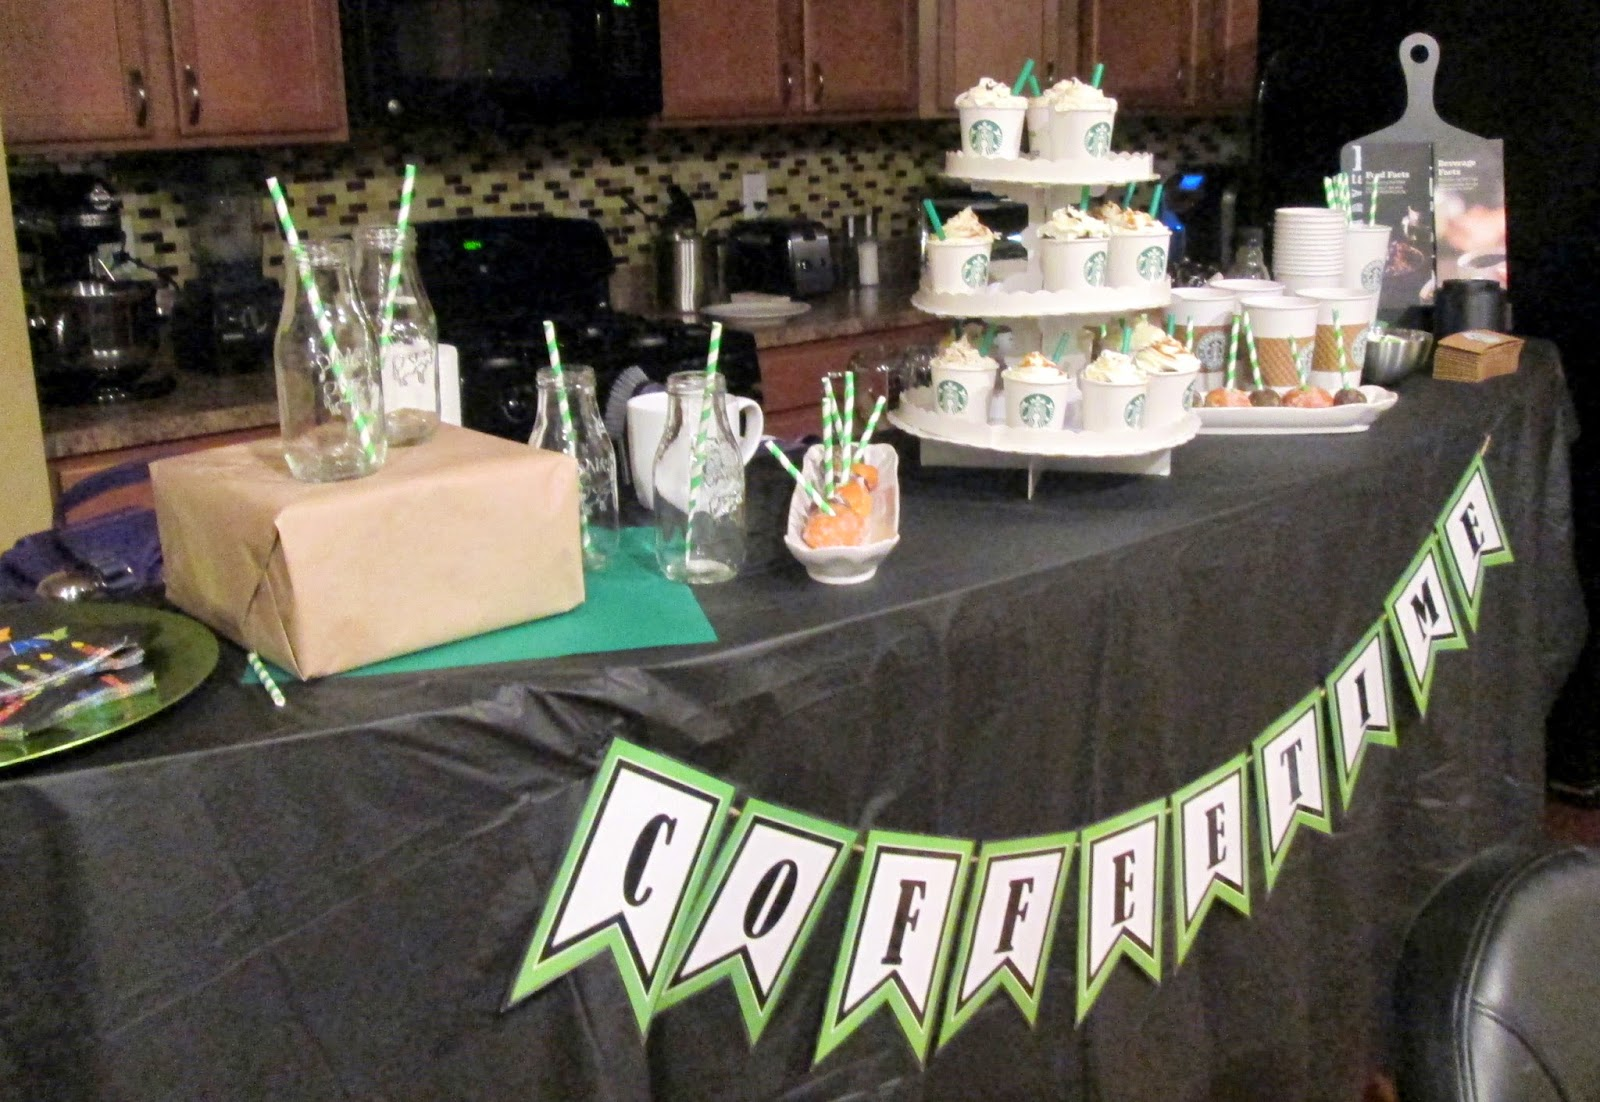 Lifestyle post on how to throw a starbucks party with dessert bar